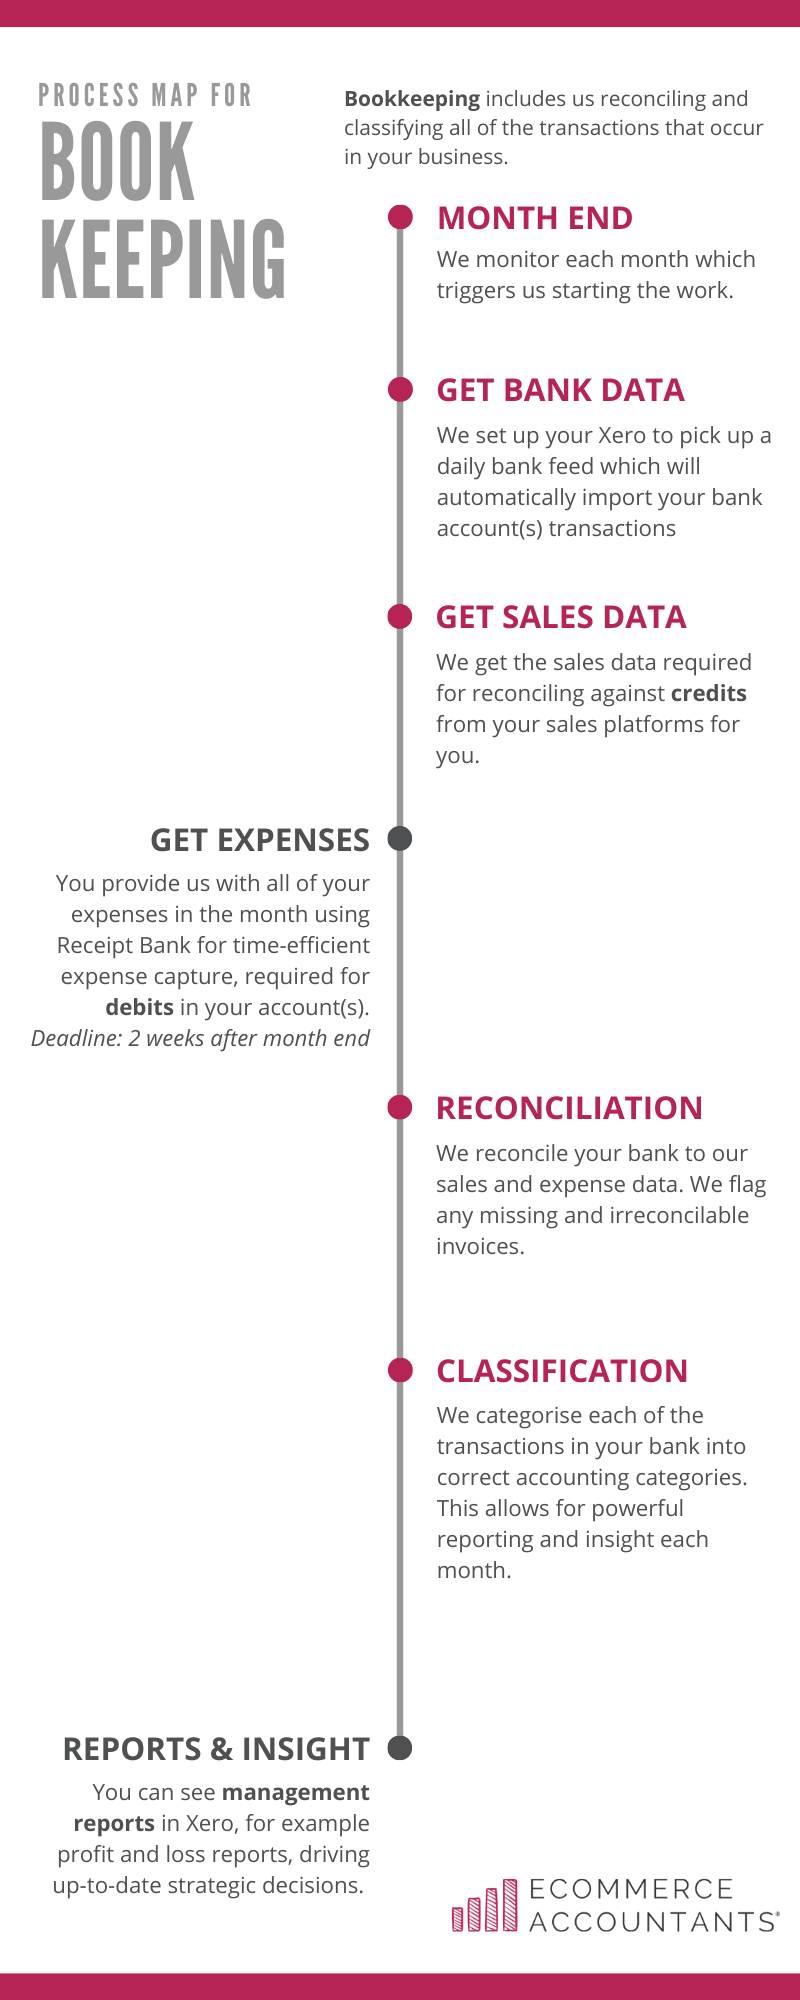 Process for bookkeeping by Ecommerce Accountants